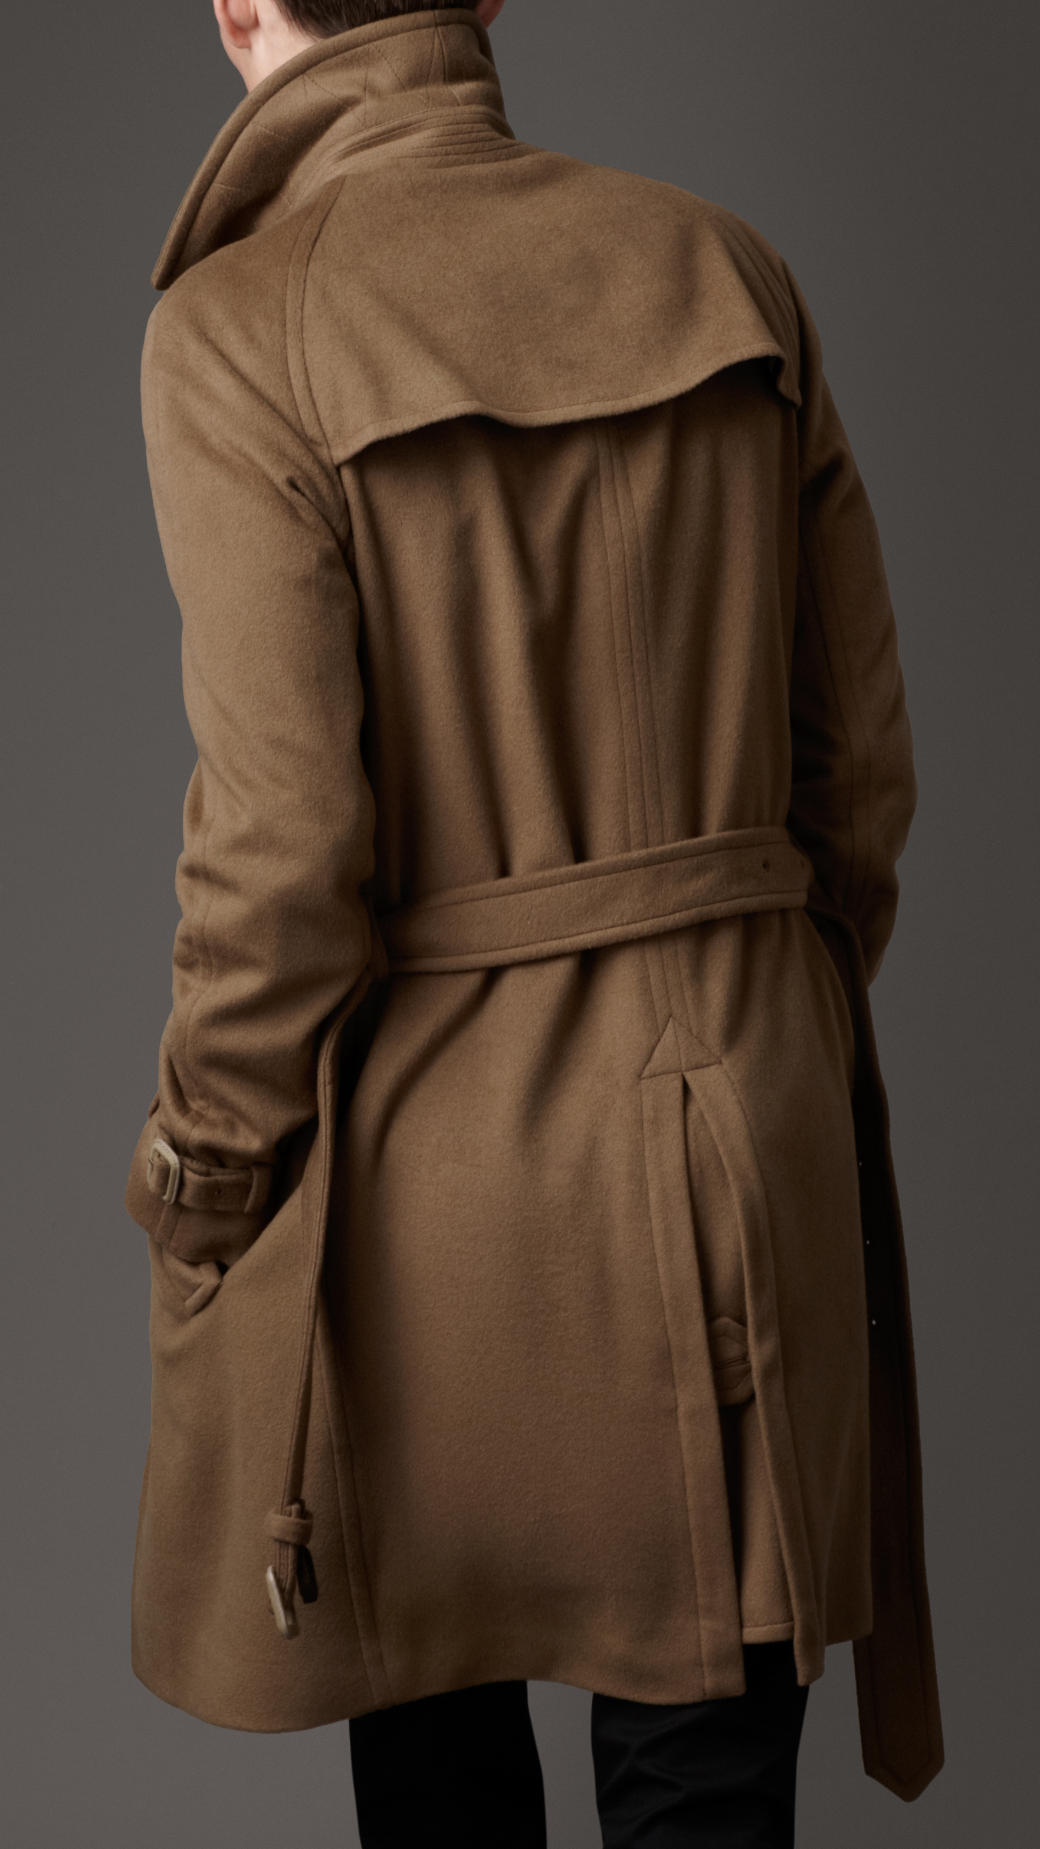 Burberry Fine Cashmere Trench Coat In Brown For Men Lyst